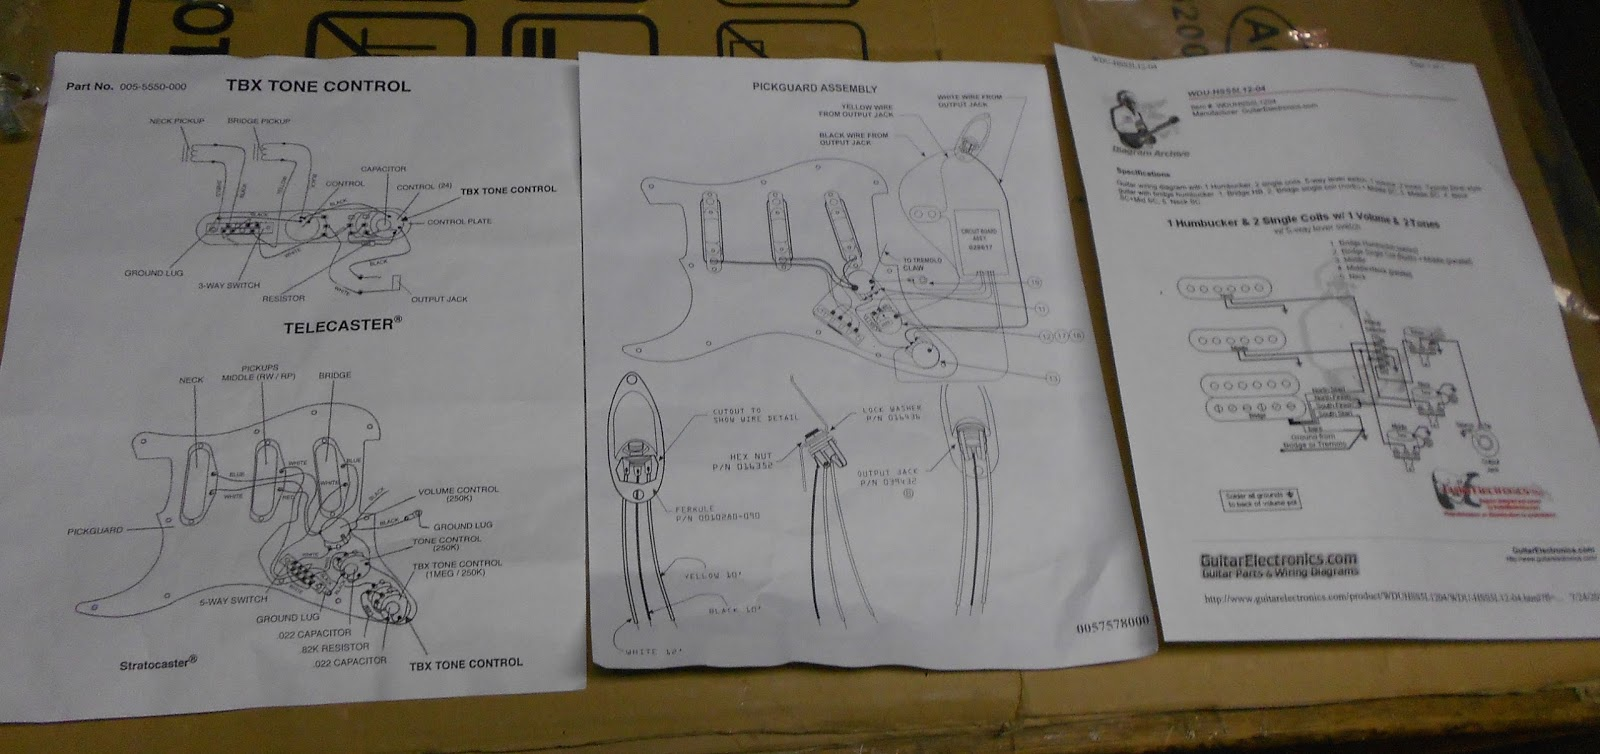 Repairs Rock Stringed Instrument Jay Turser Wiring Diagrams The First Step Was To Remove Strings And Neck For Routing My Cavity House Circuit Board